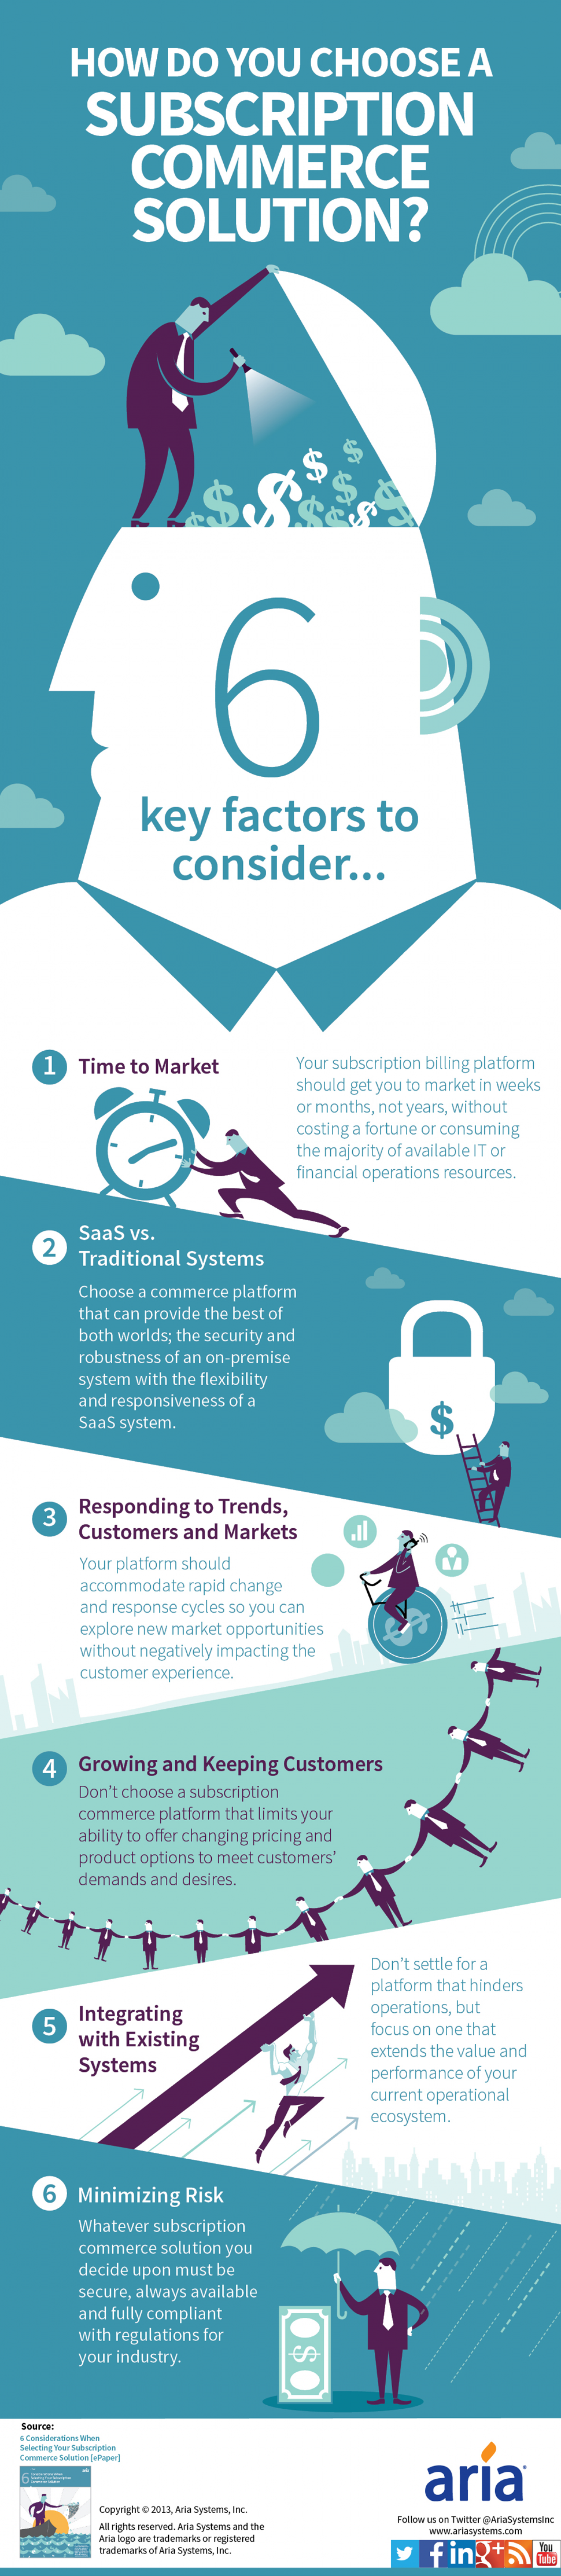 6 Factors to Consider When Selecting a Subscription Commerce Solution Infographic